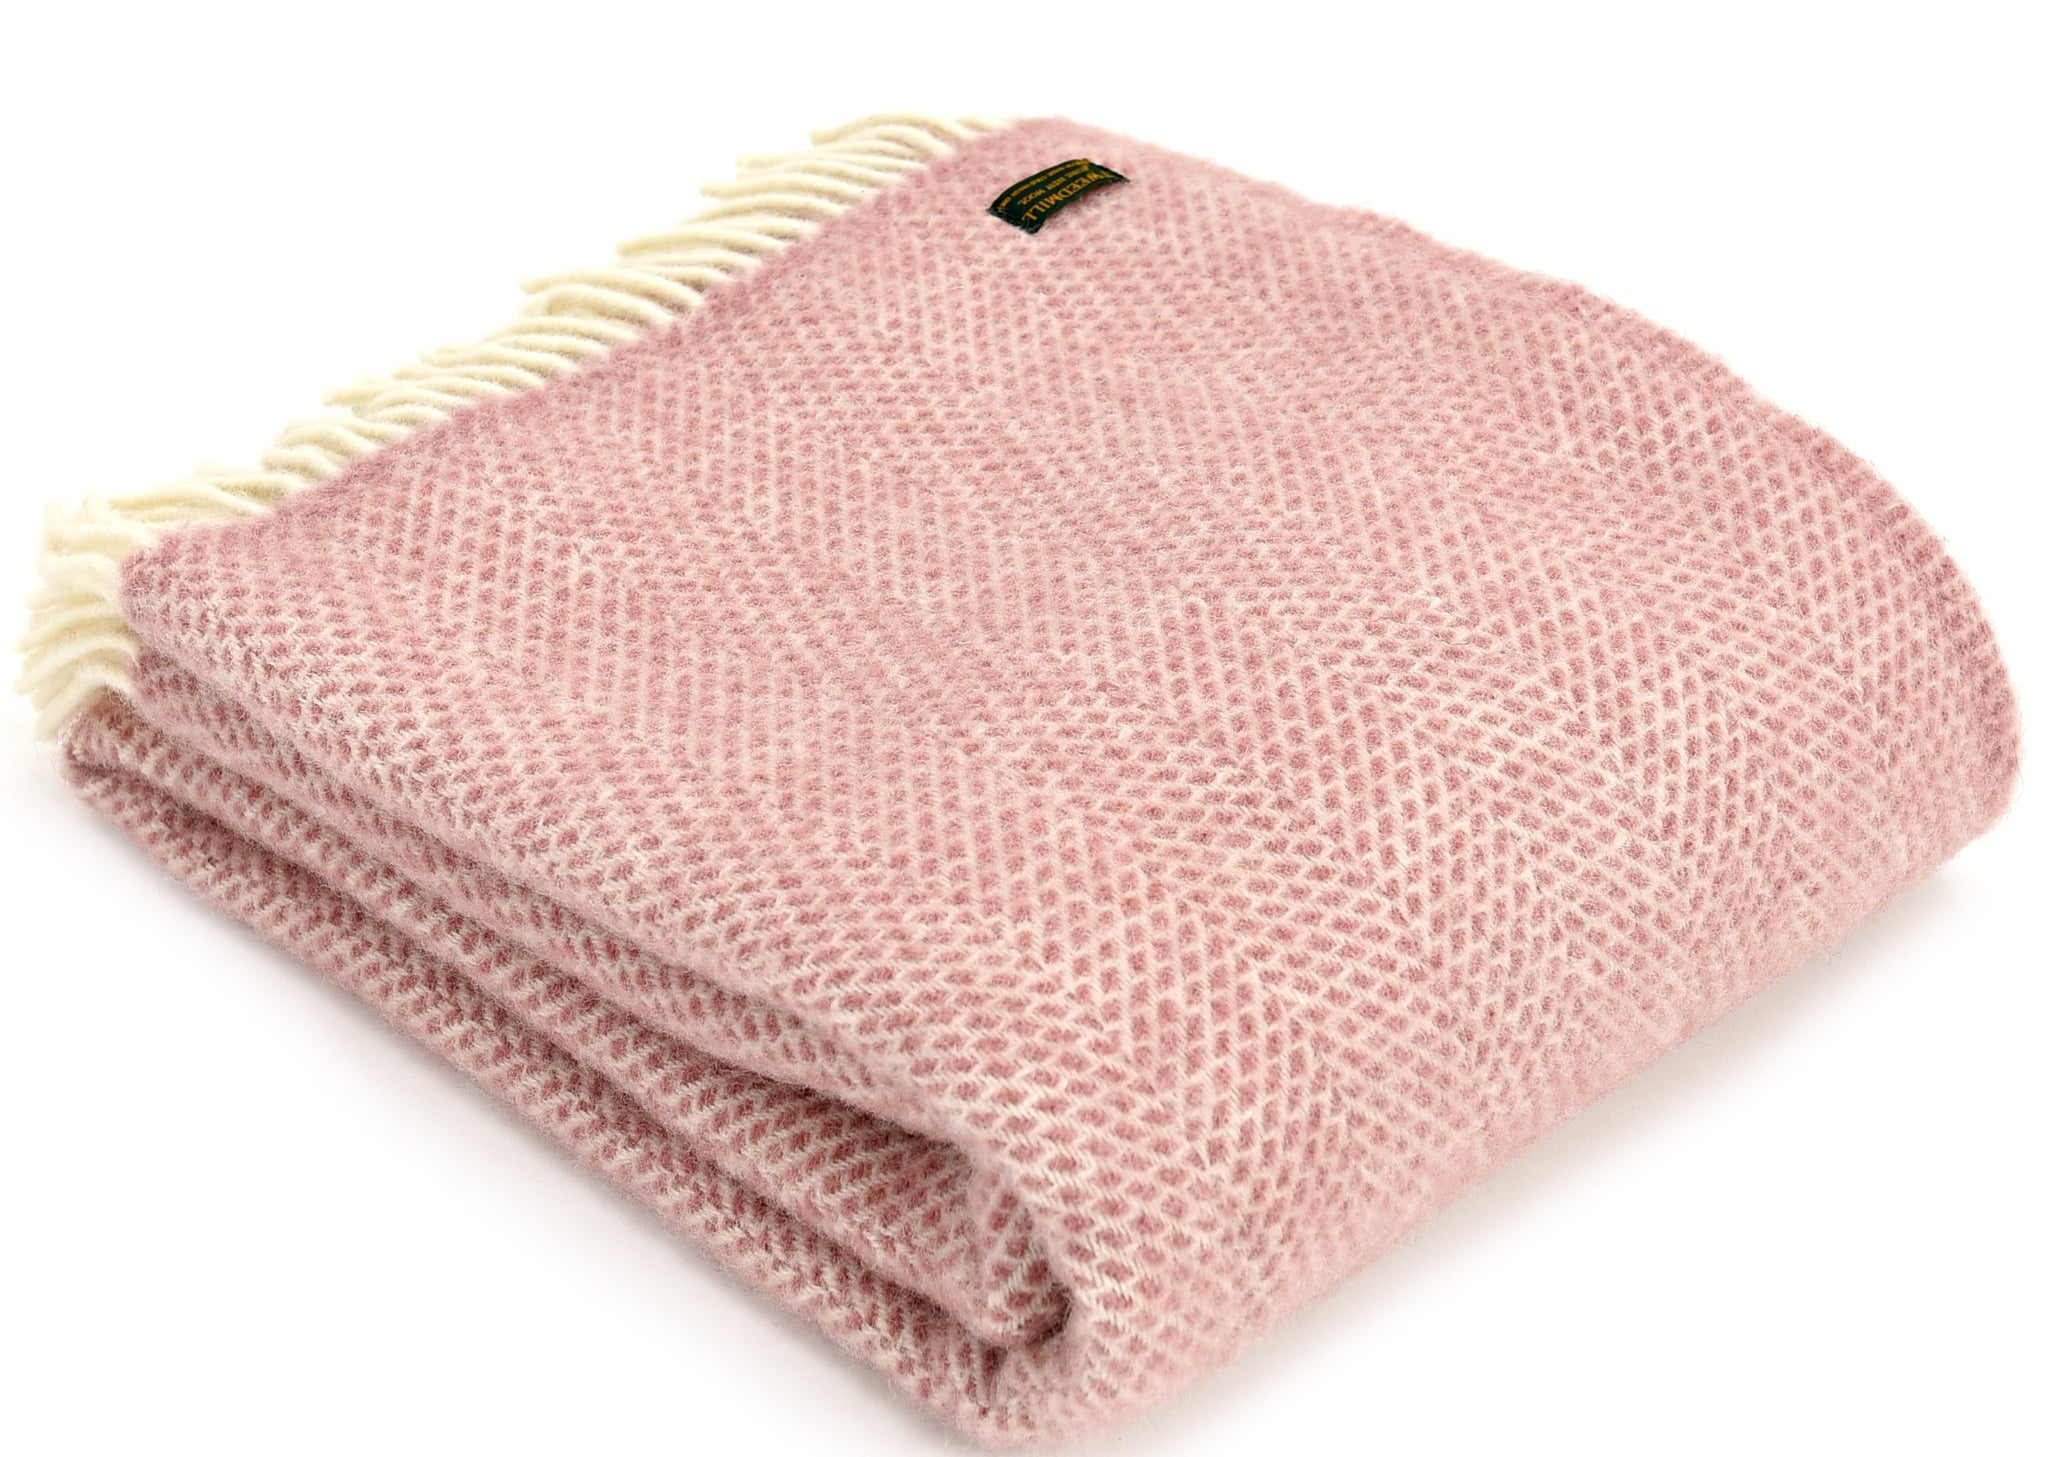 Tweedmill Pale Rose Pink Beehive Wool Blanket Throw